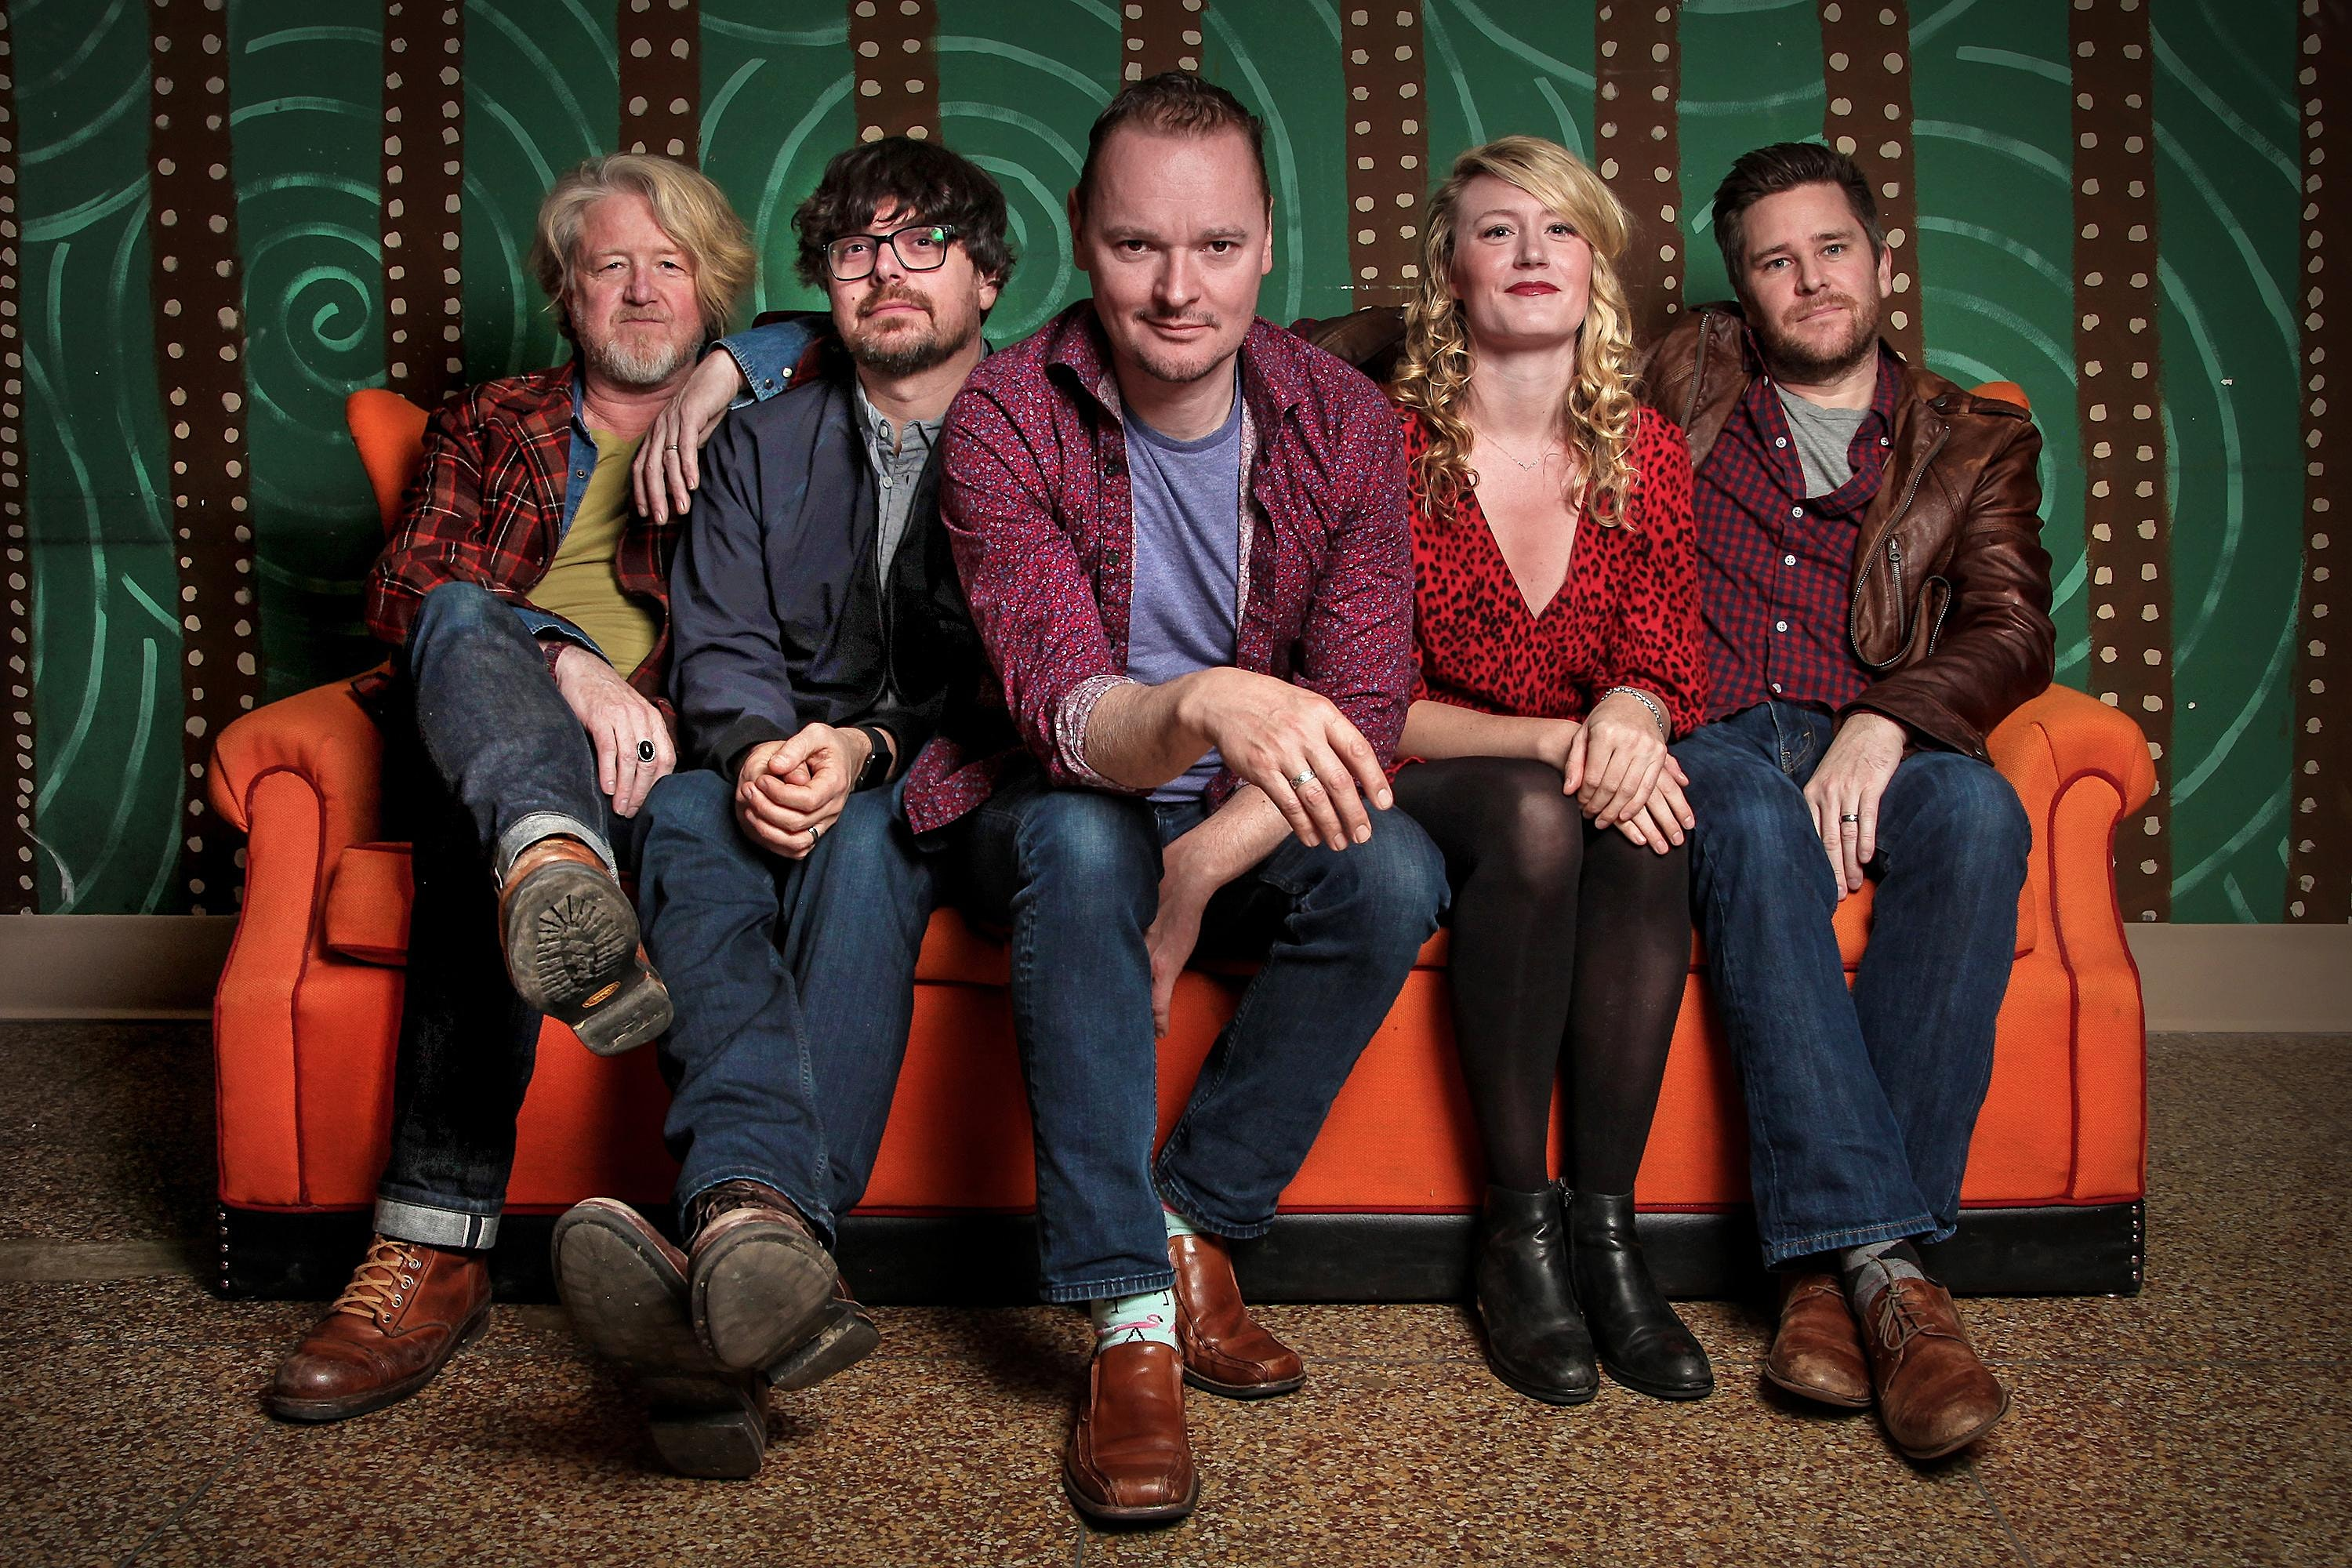 Gaelic Storm: We Missed You Tour